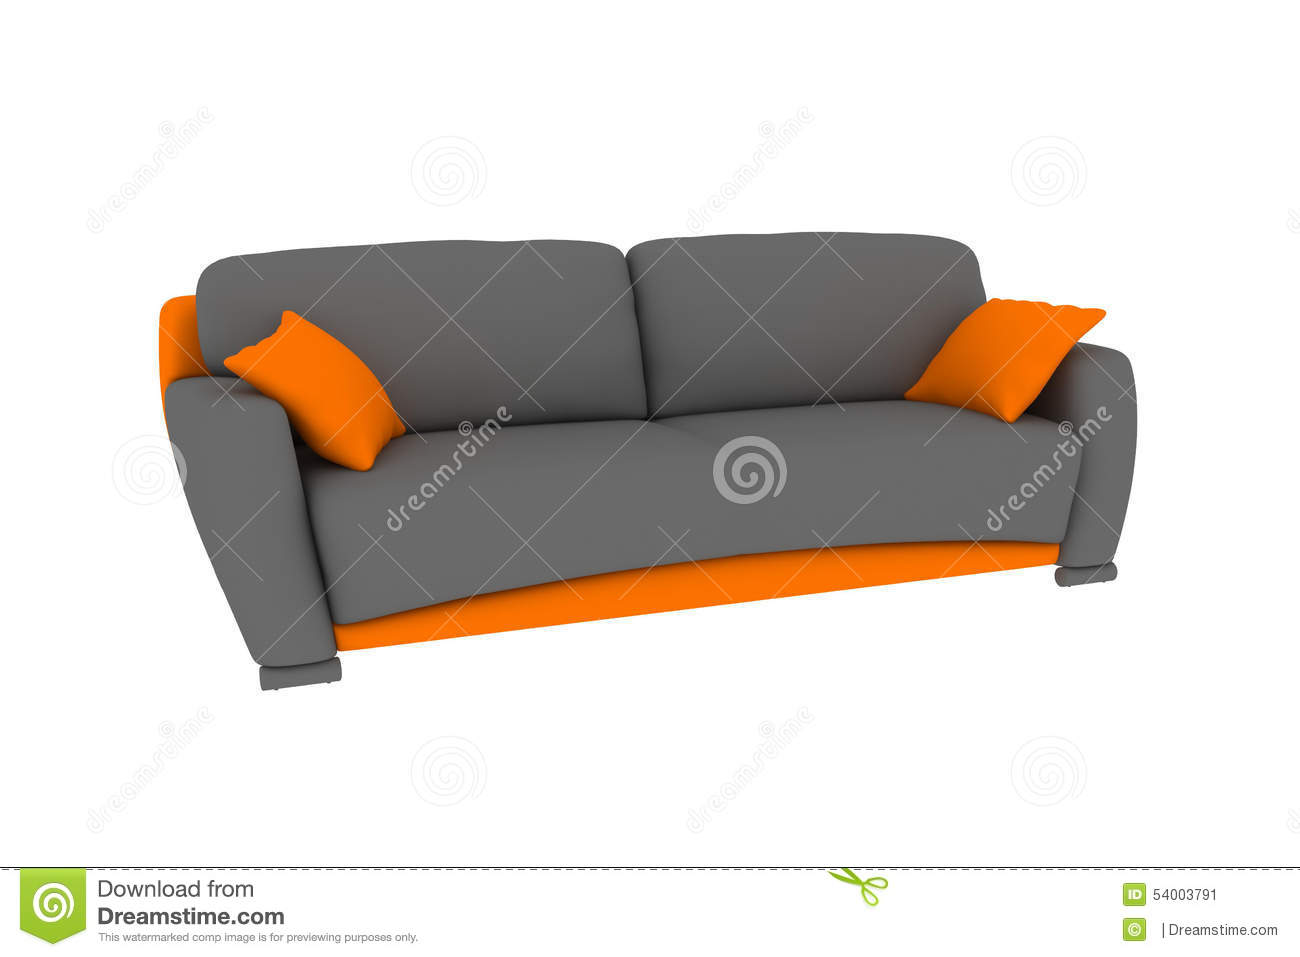 Lokalisiertes grau-orange Sofa